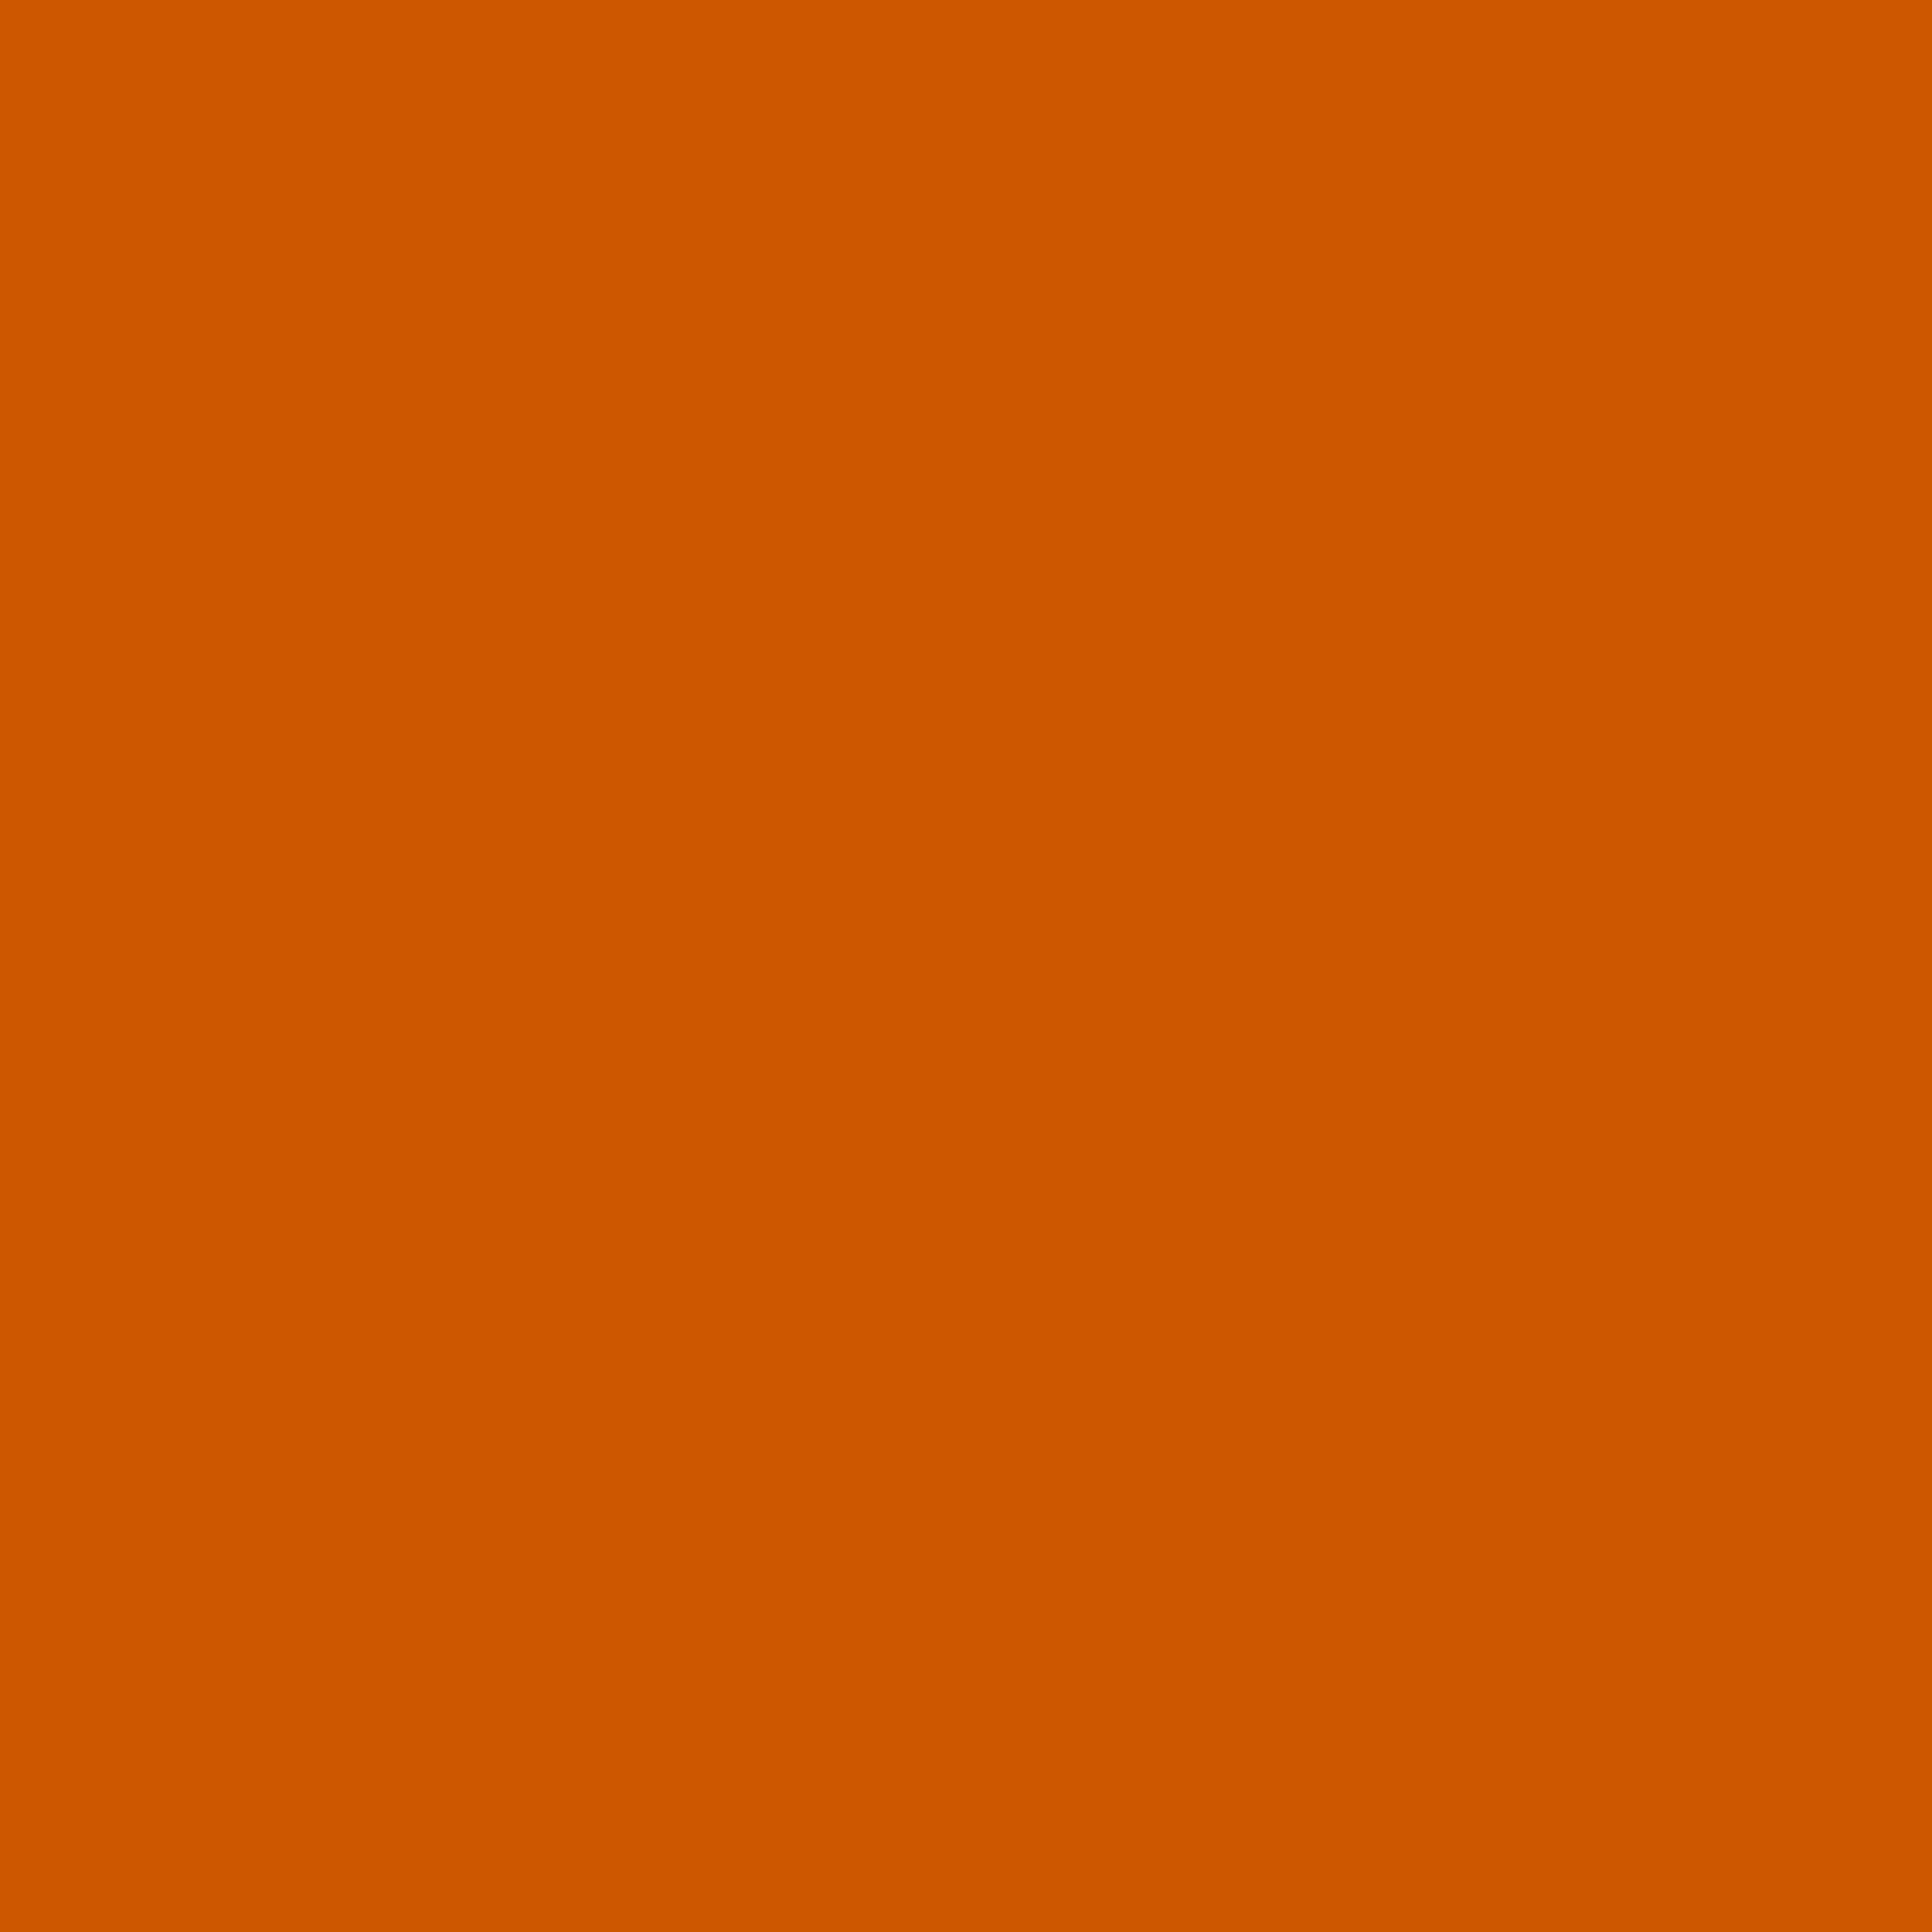 3600x3600 Tenne Tawny Solid Color Background